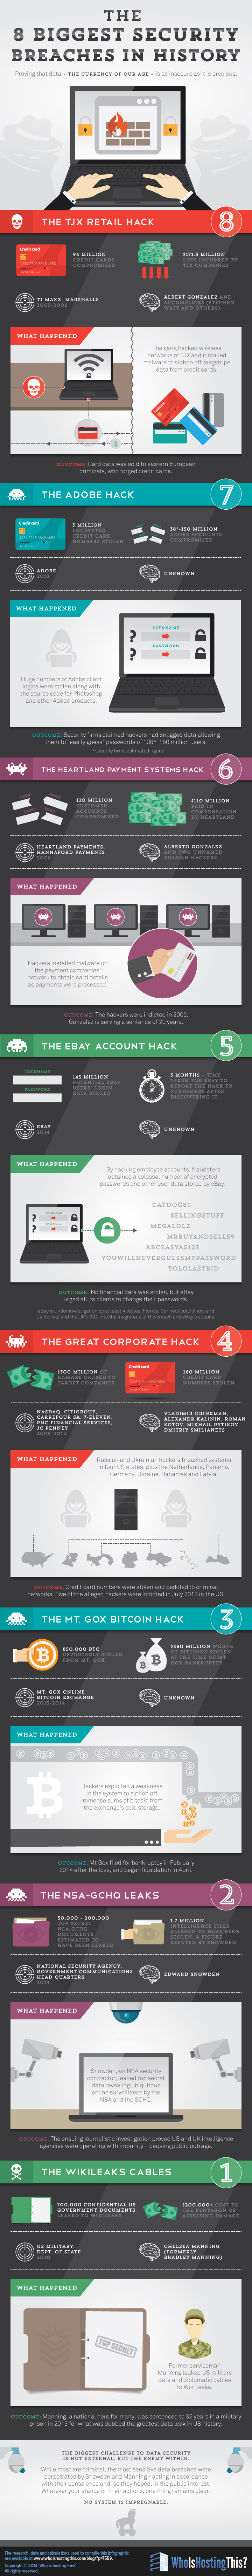 Infographic of Data Breaches